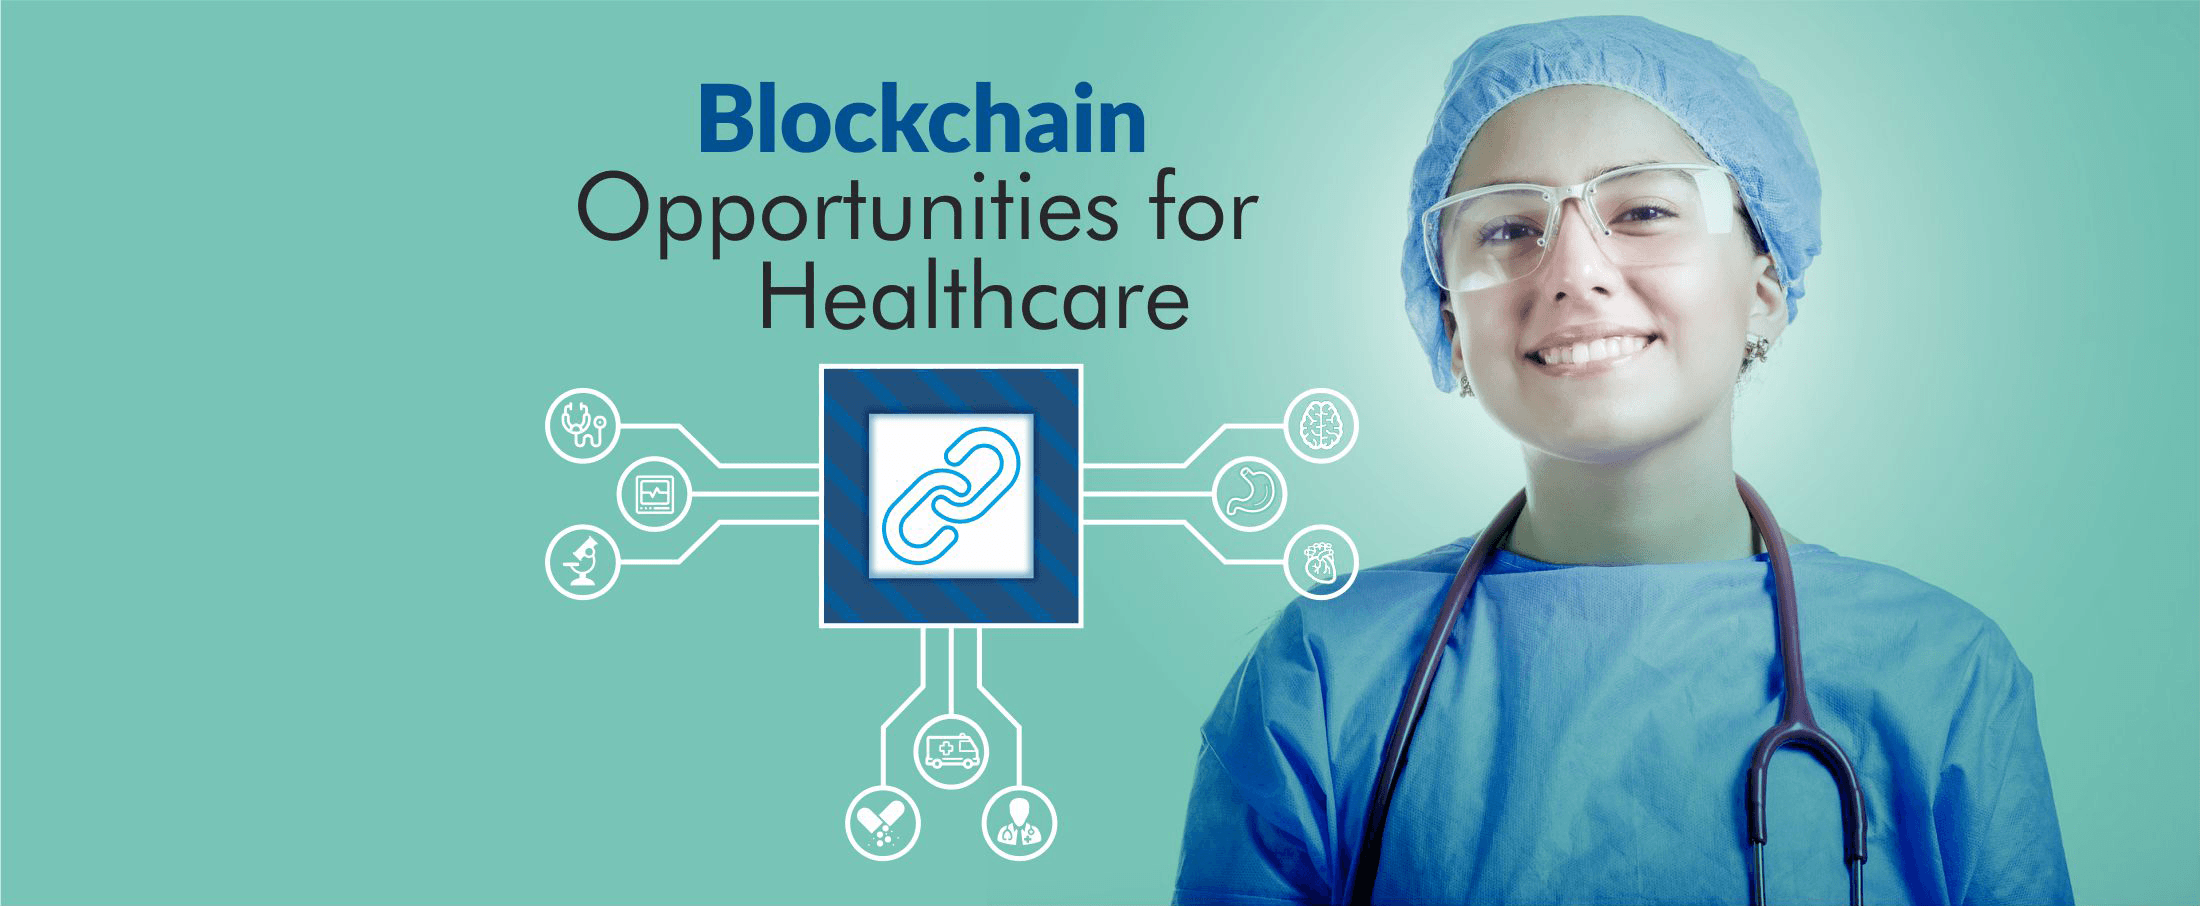 Blockchain: Opportunities for Healthcare